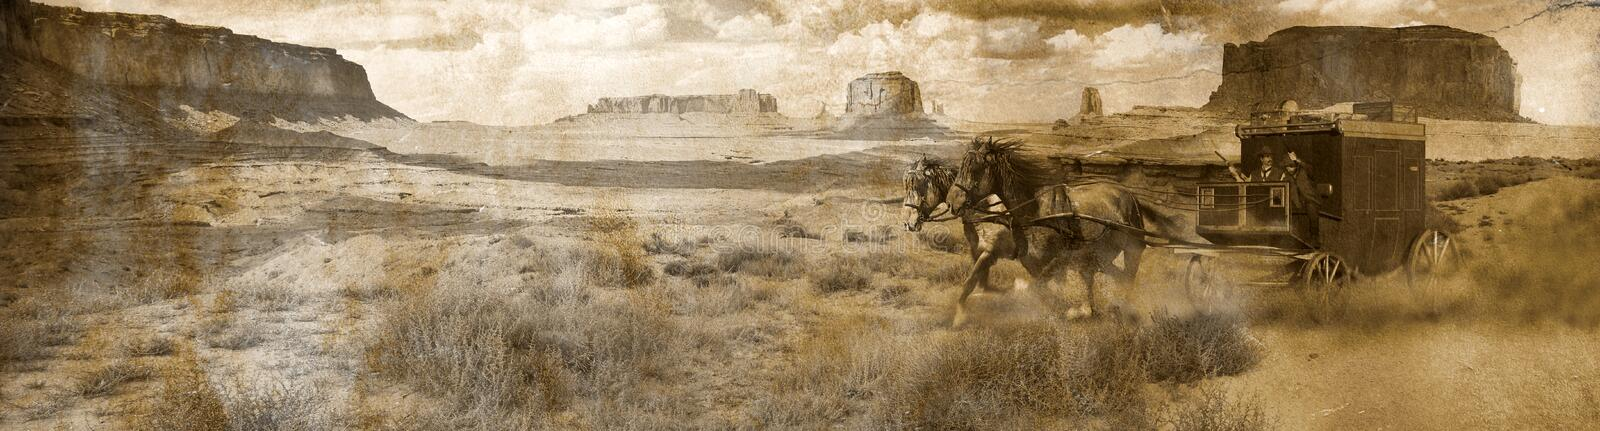 Stagecoach Panoramic. A fast stagecoach pulled by two horses, crosses the desert of Monument Valley raising a cloud of dust. We can see two men on the stagecoach